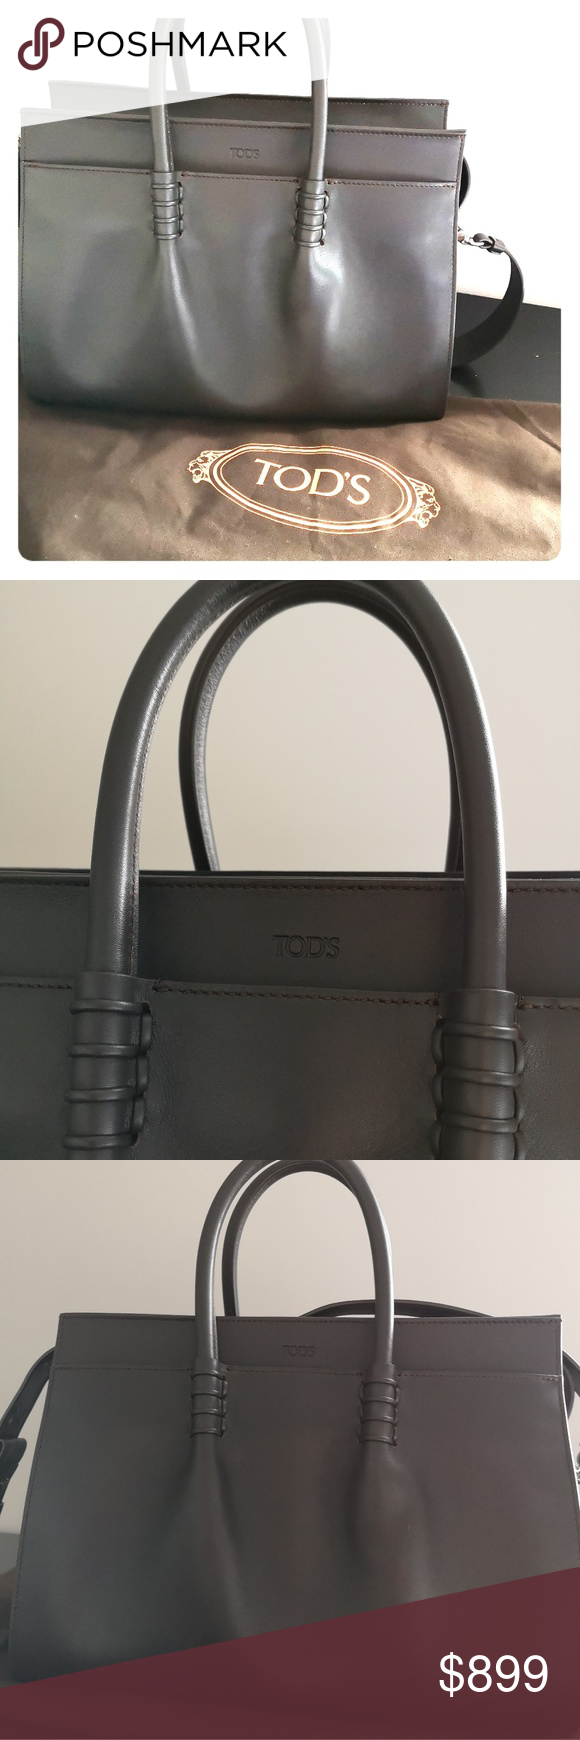 2eb73e11a4 Tod's Classic Handbag LDM Bauletto Medio The perfect work purse that will  work with any outfit Lots of pockets Genuine Leather Color: Charcoal Made  in Italy ...